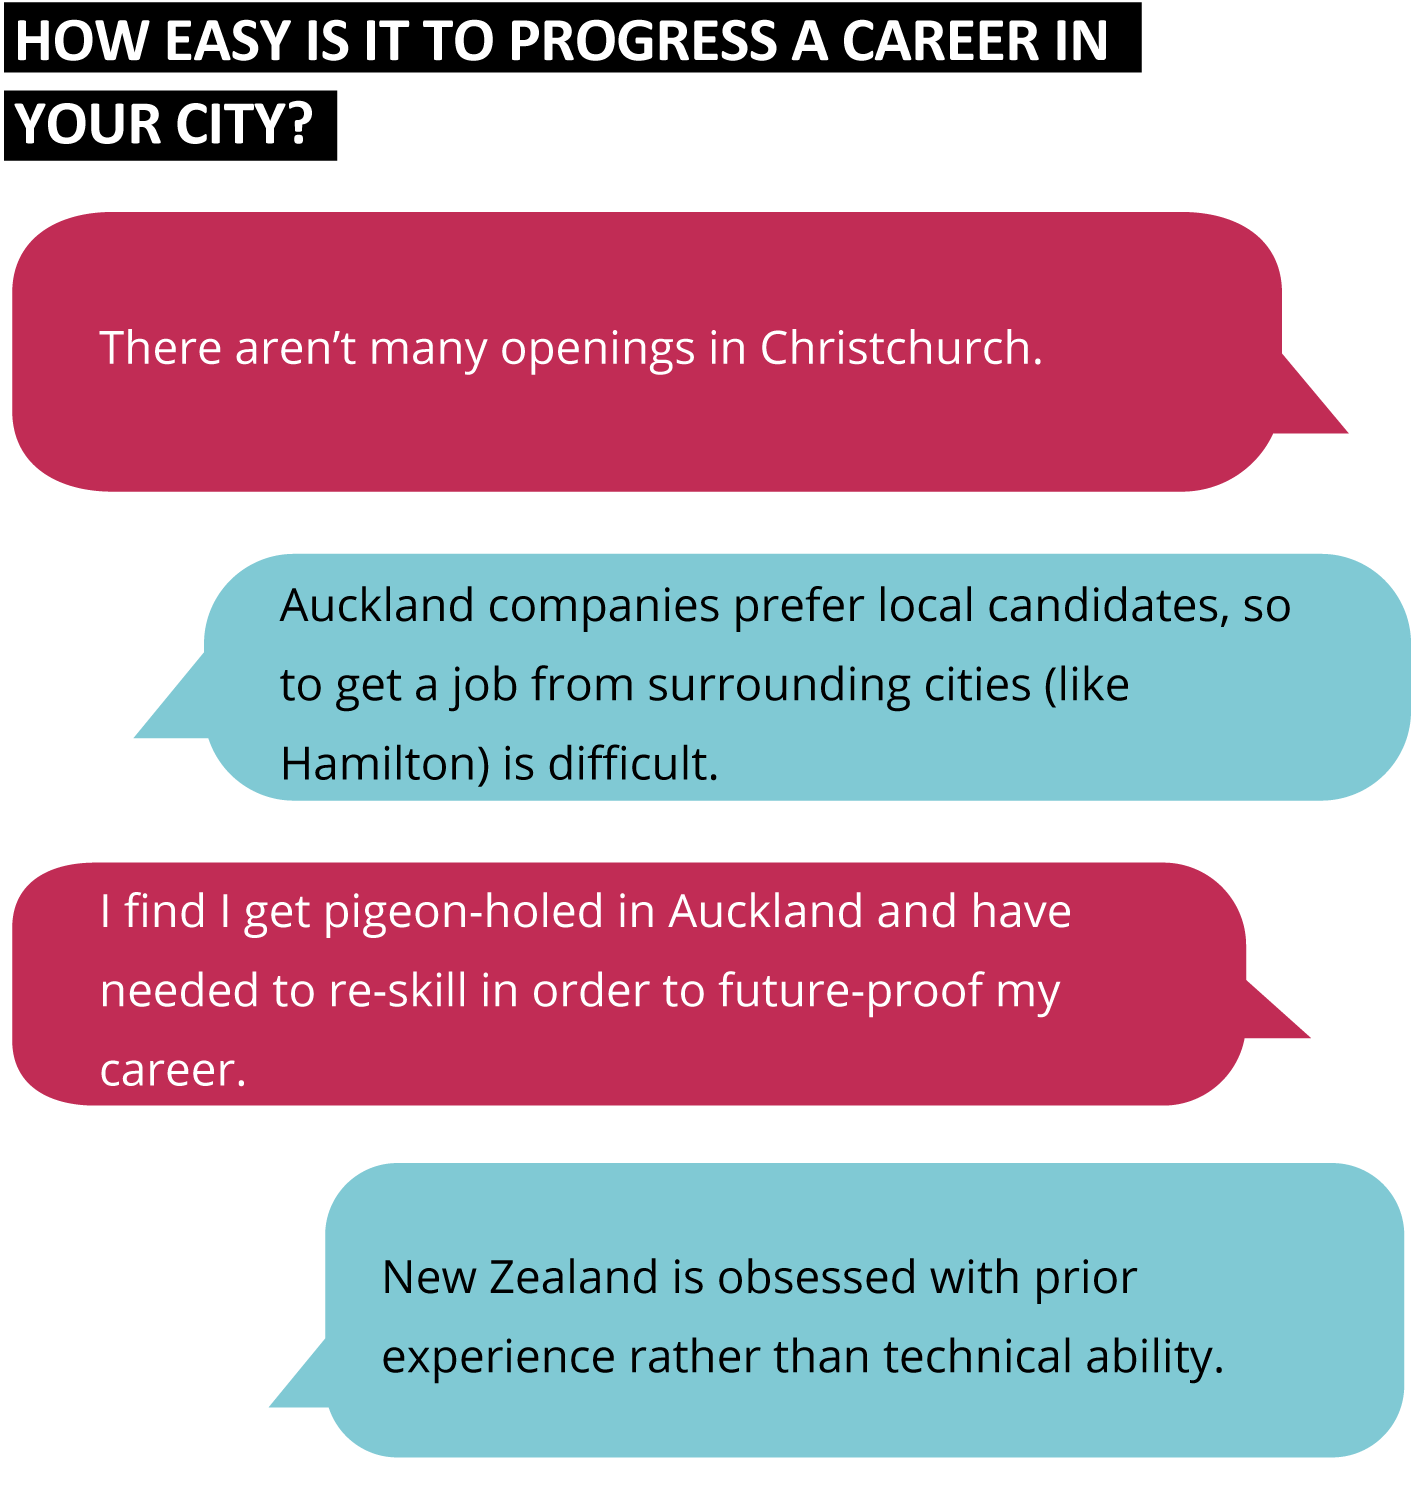 How easy is it to progress a career in your city?